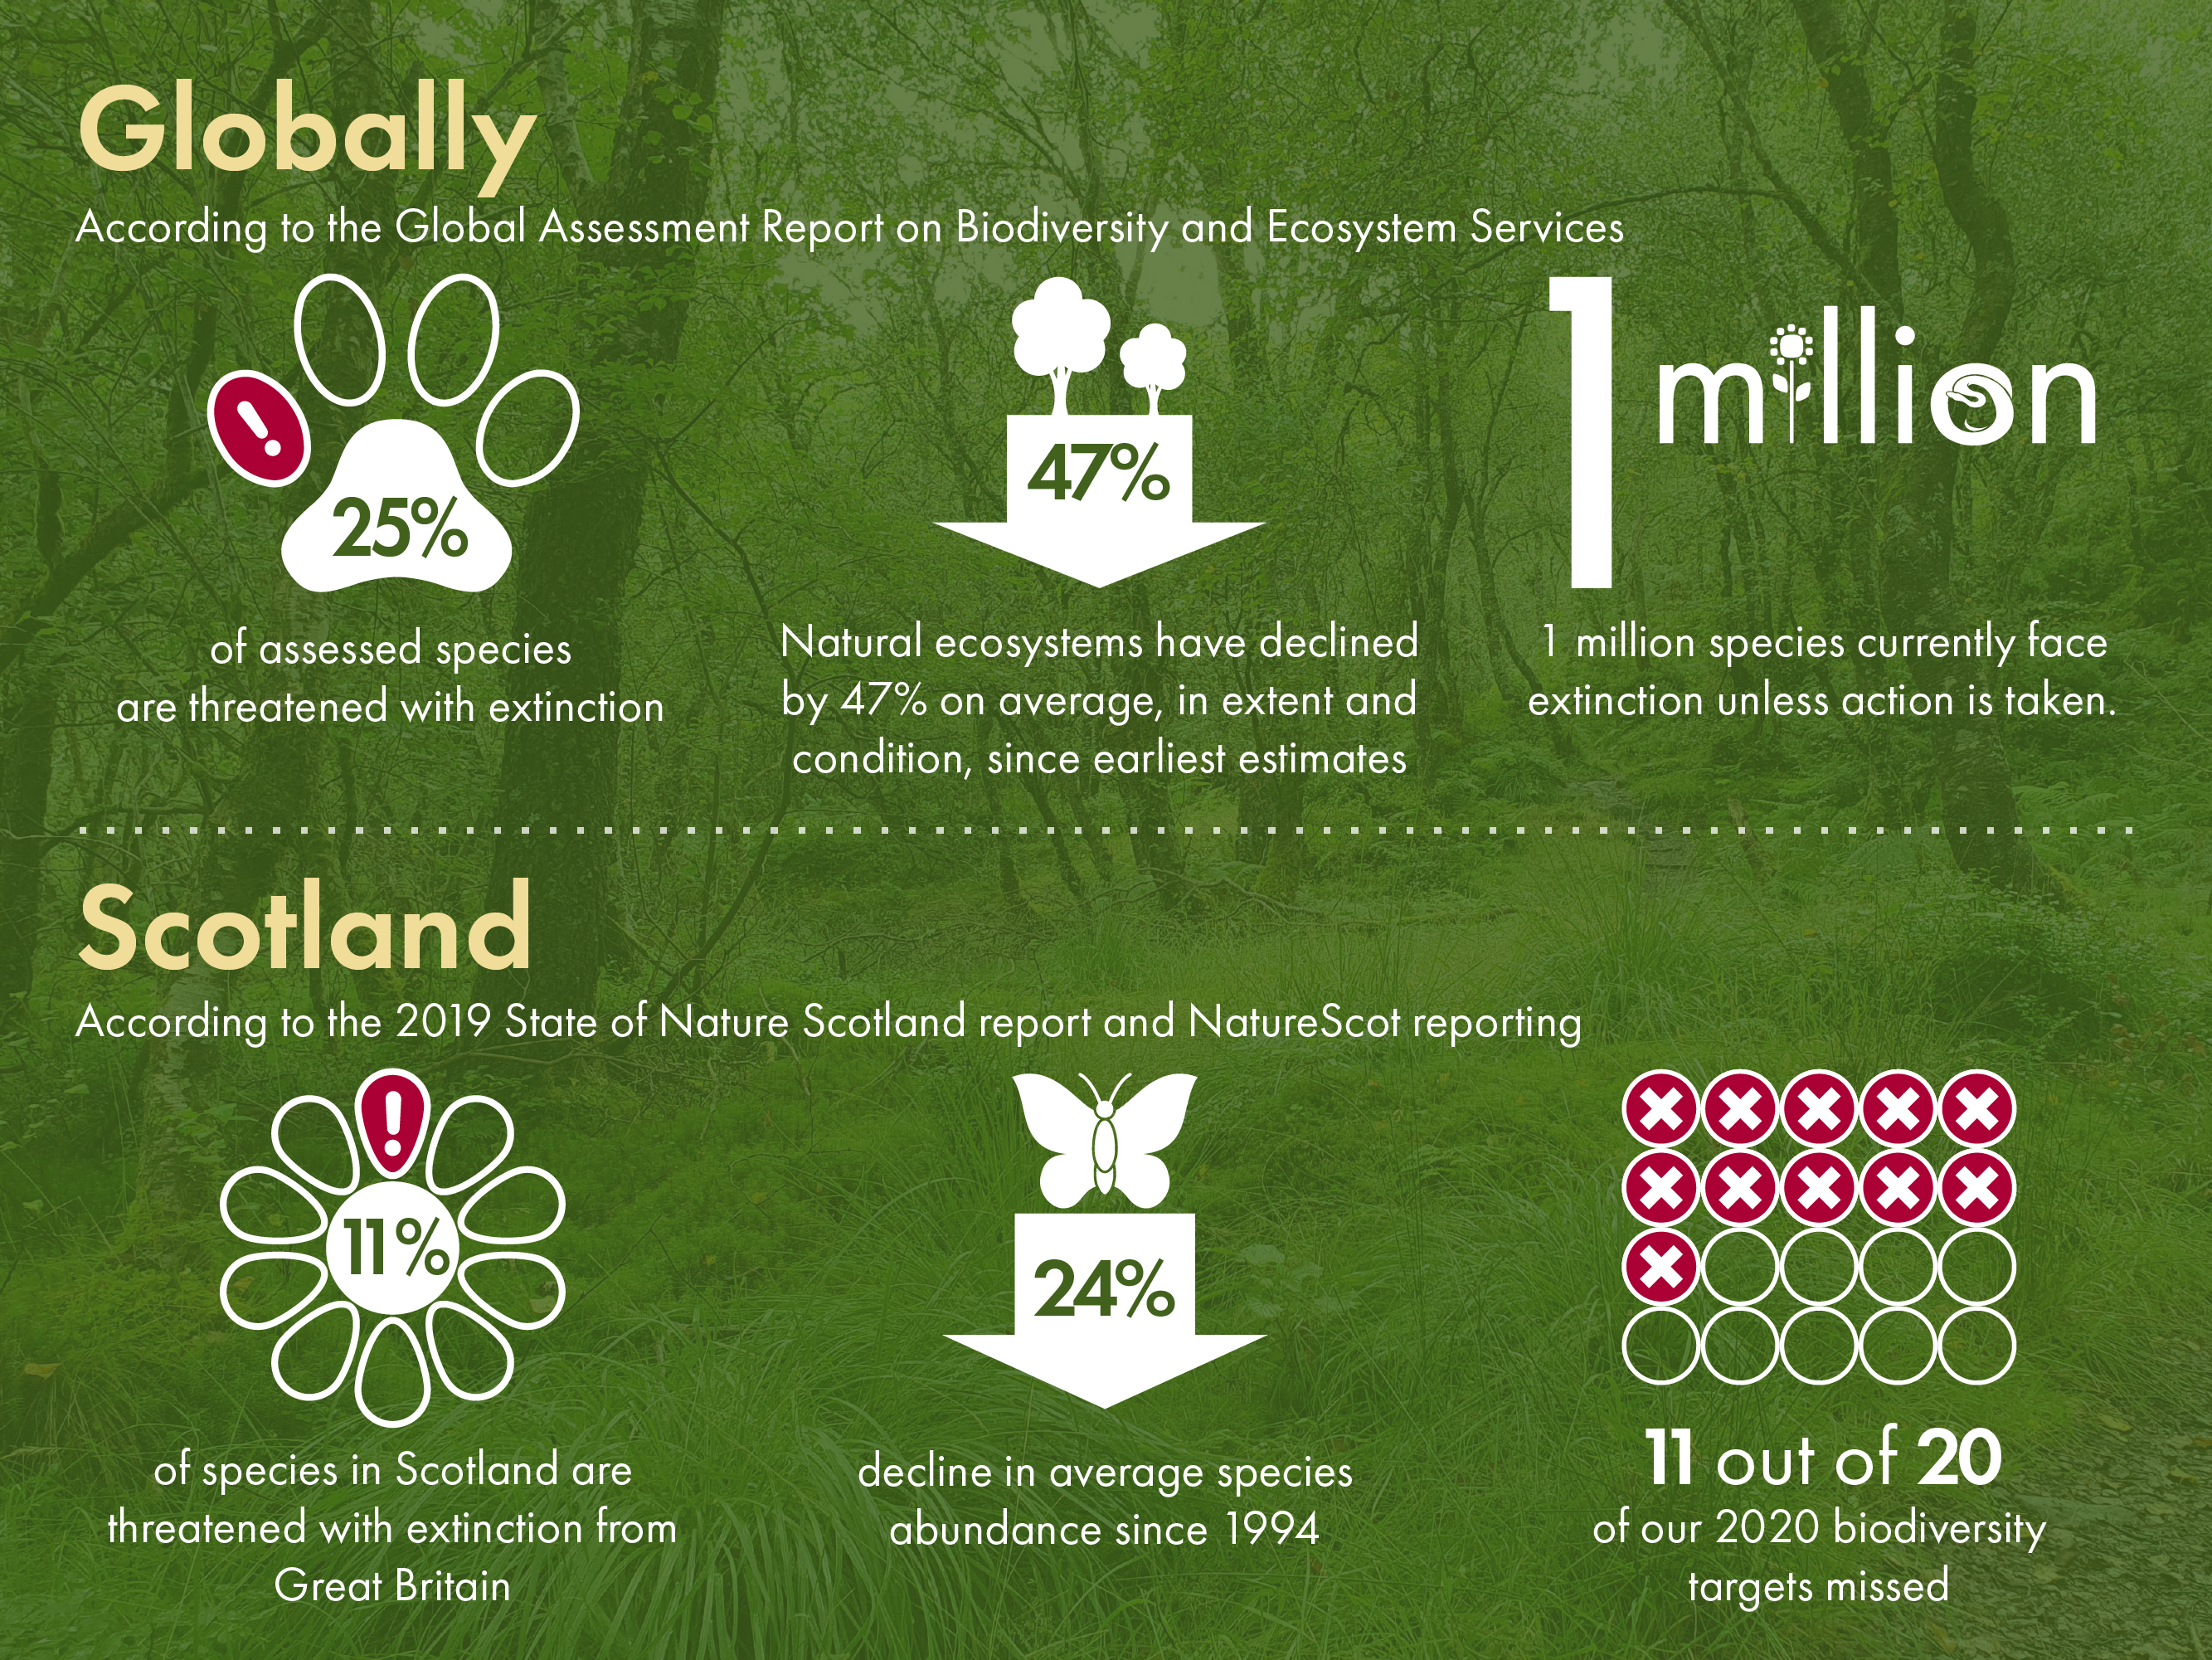 Key reports in recent years show nature is in decline in Scotland and globally.